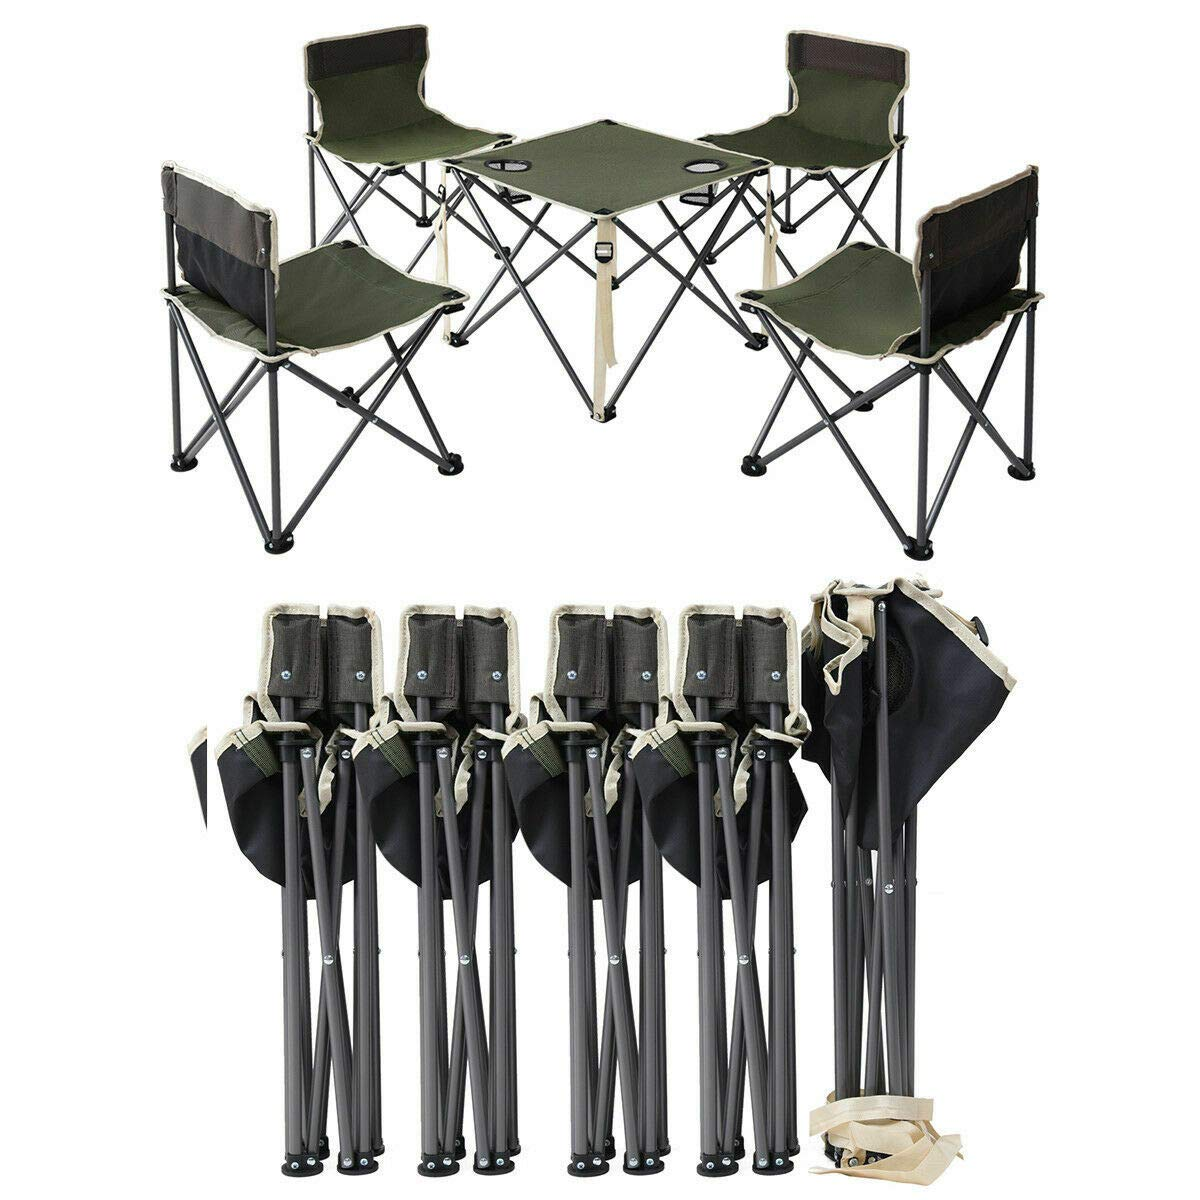 ANA Store Enjoy Barbecue Party Curl Stand Iron Stell Frame Green Oxford Portable Folding Table Chairs Set Inside Outside Camp Beach Picnic with Carrying Bag by ANA Store (Image #1)